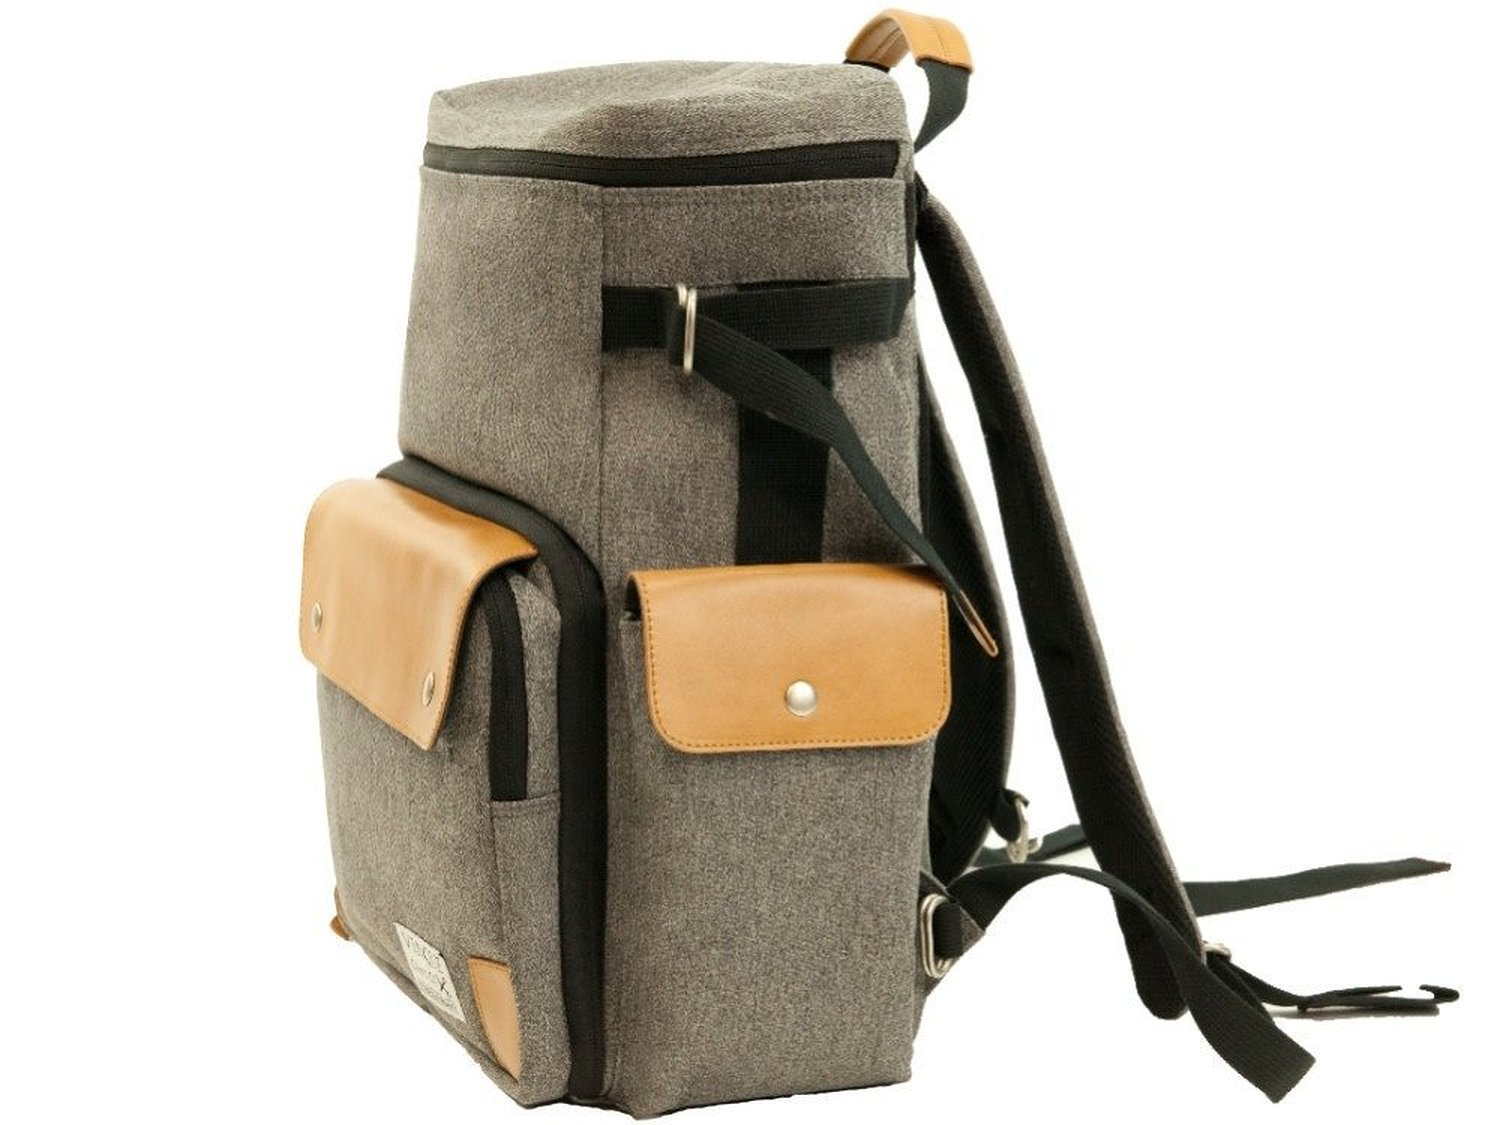 Venque Craft Co. CamPro Camera Backpack (Grey) by Venque Craft Co. (Image #2)